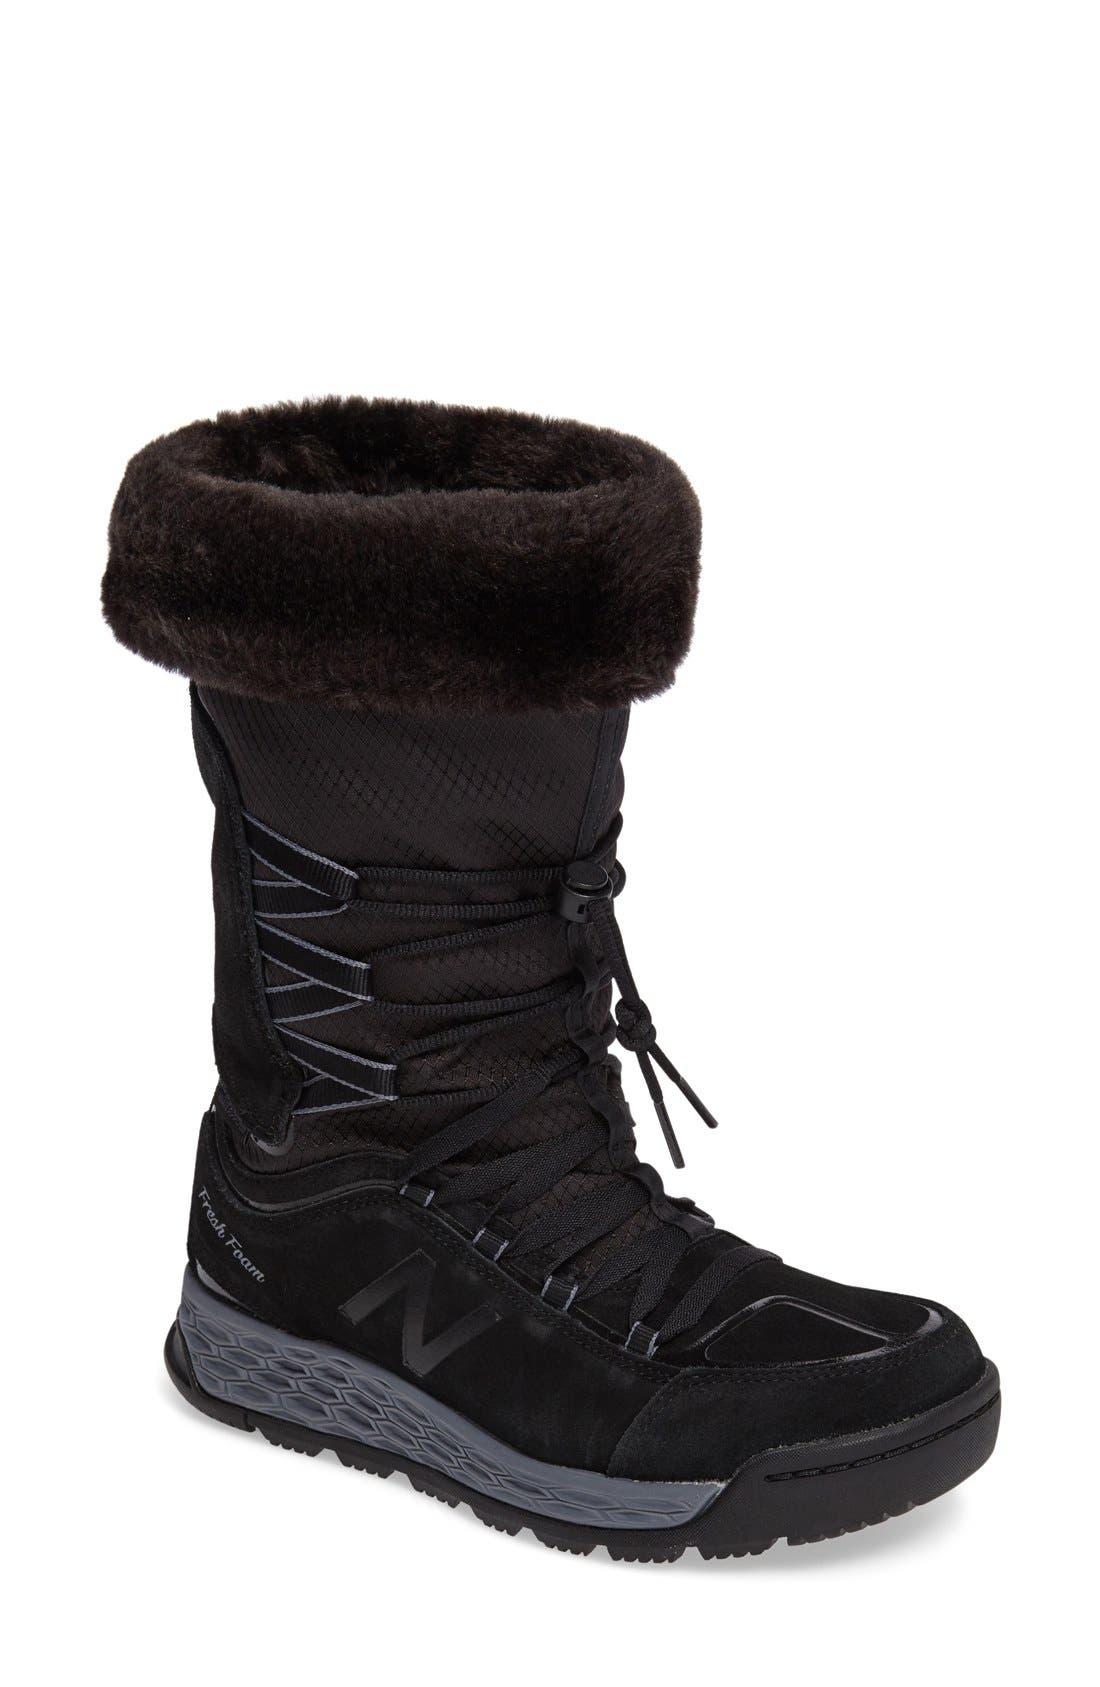 New Balance Q416 1000 Faux Fur Waterproof Platform Boot (Women)